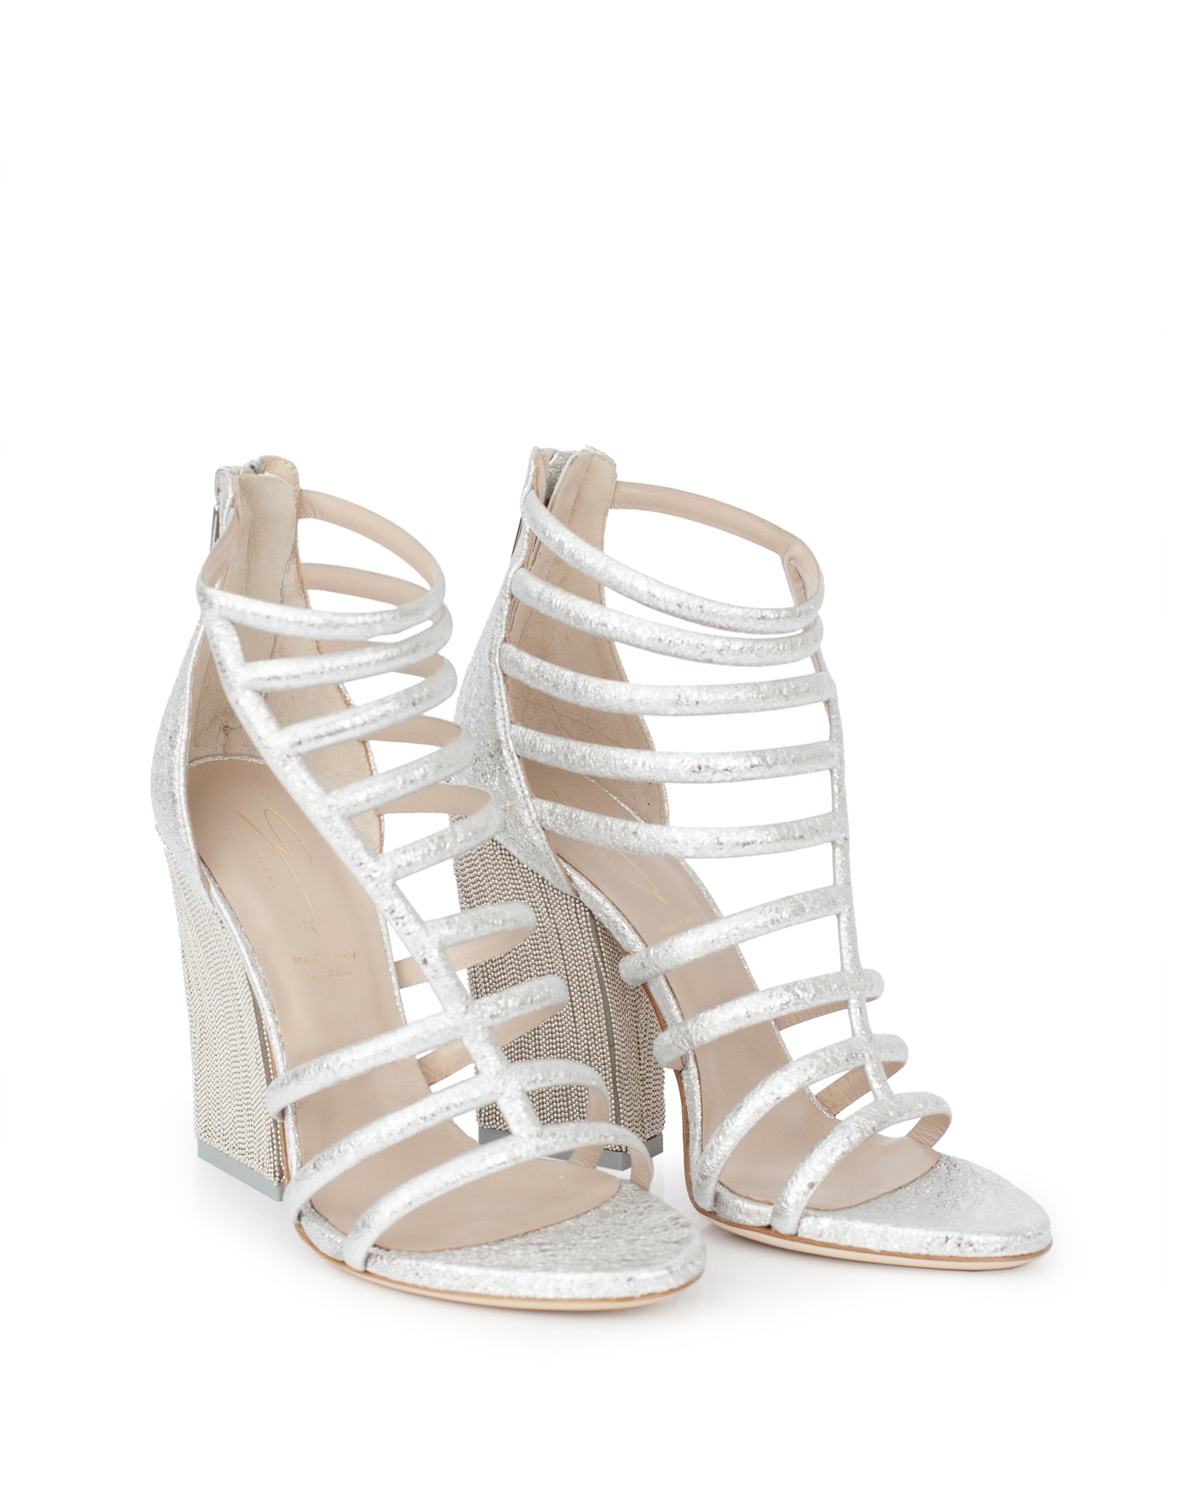 15e990d3ed02 Silver-laminated leather sandals with decorated heel